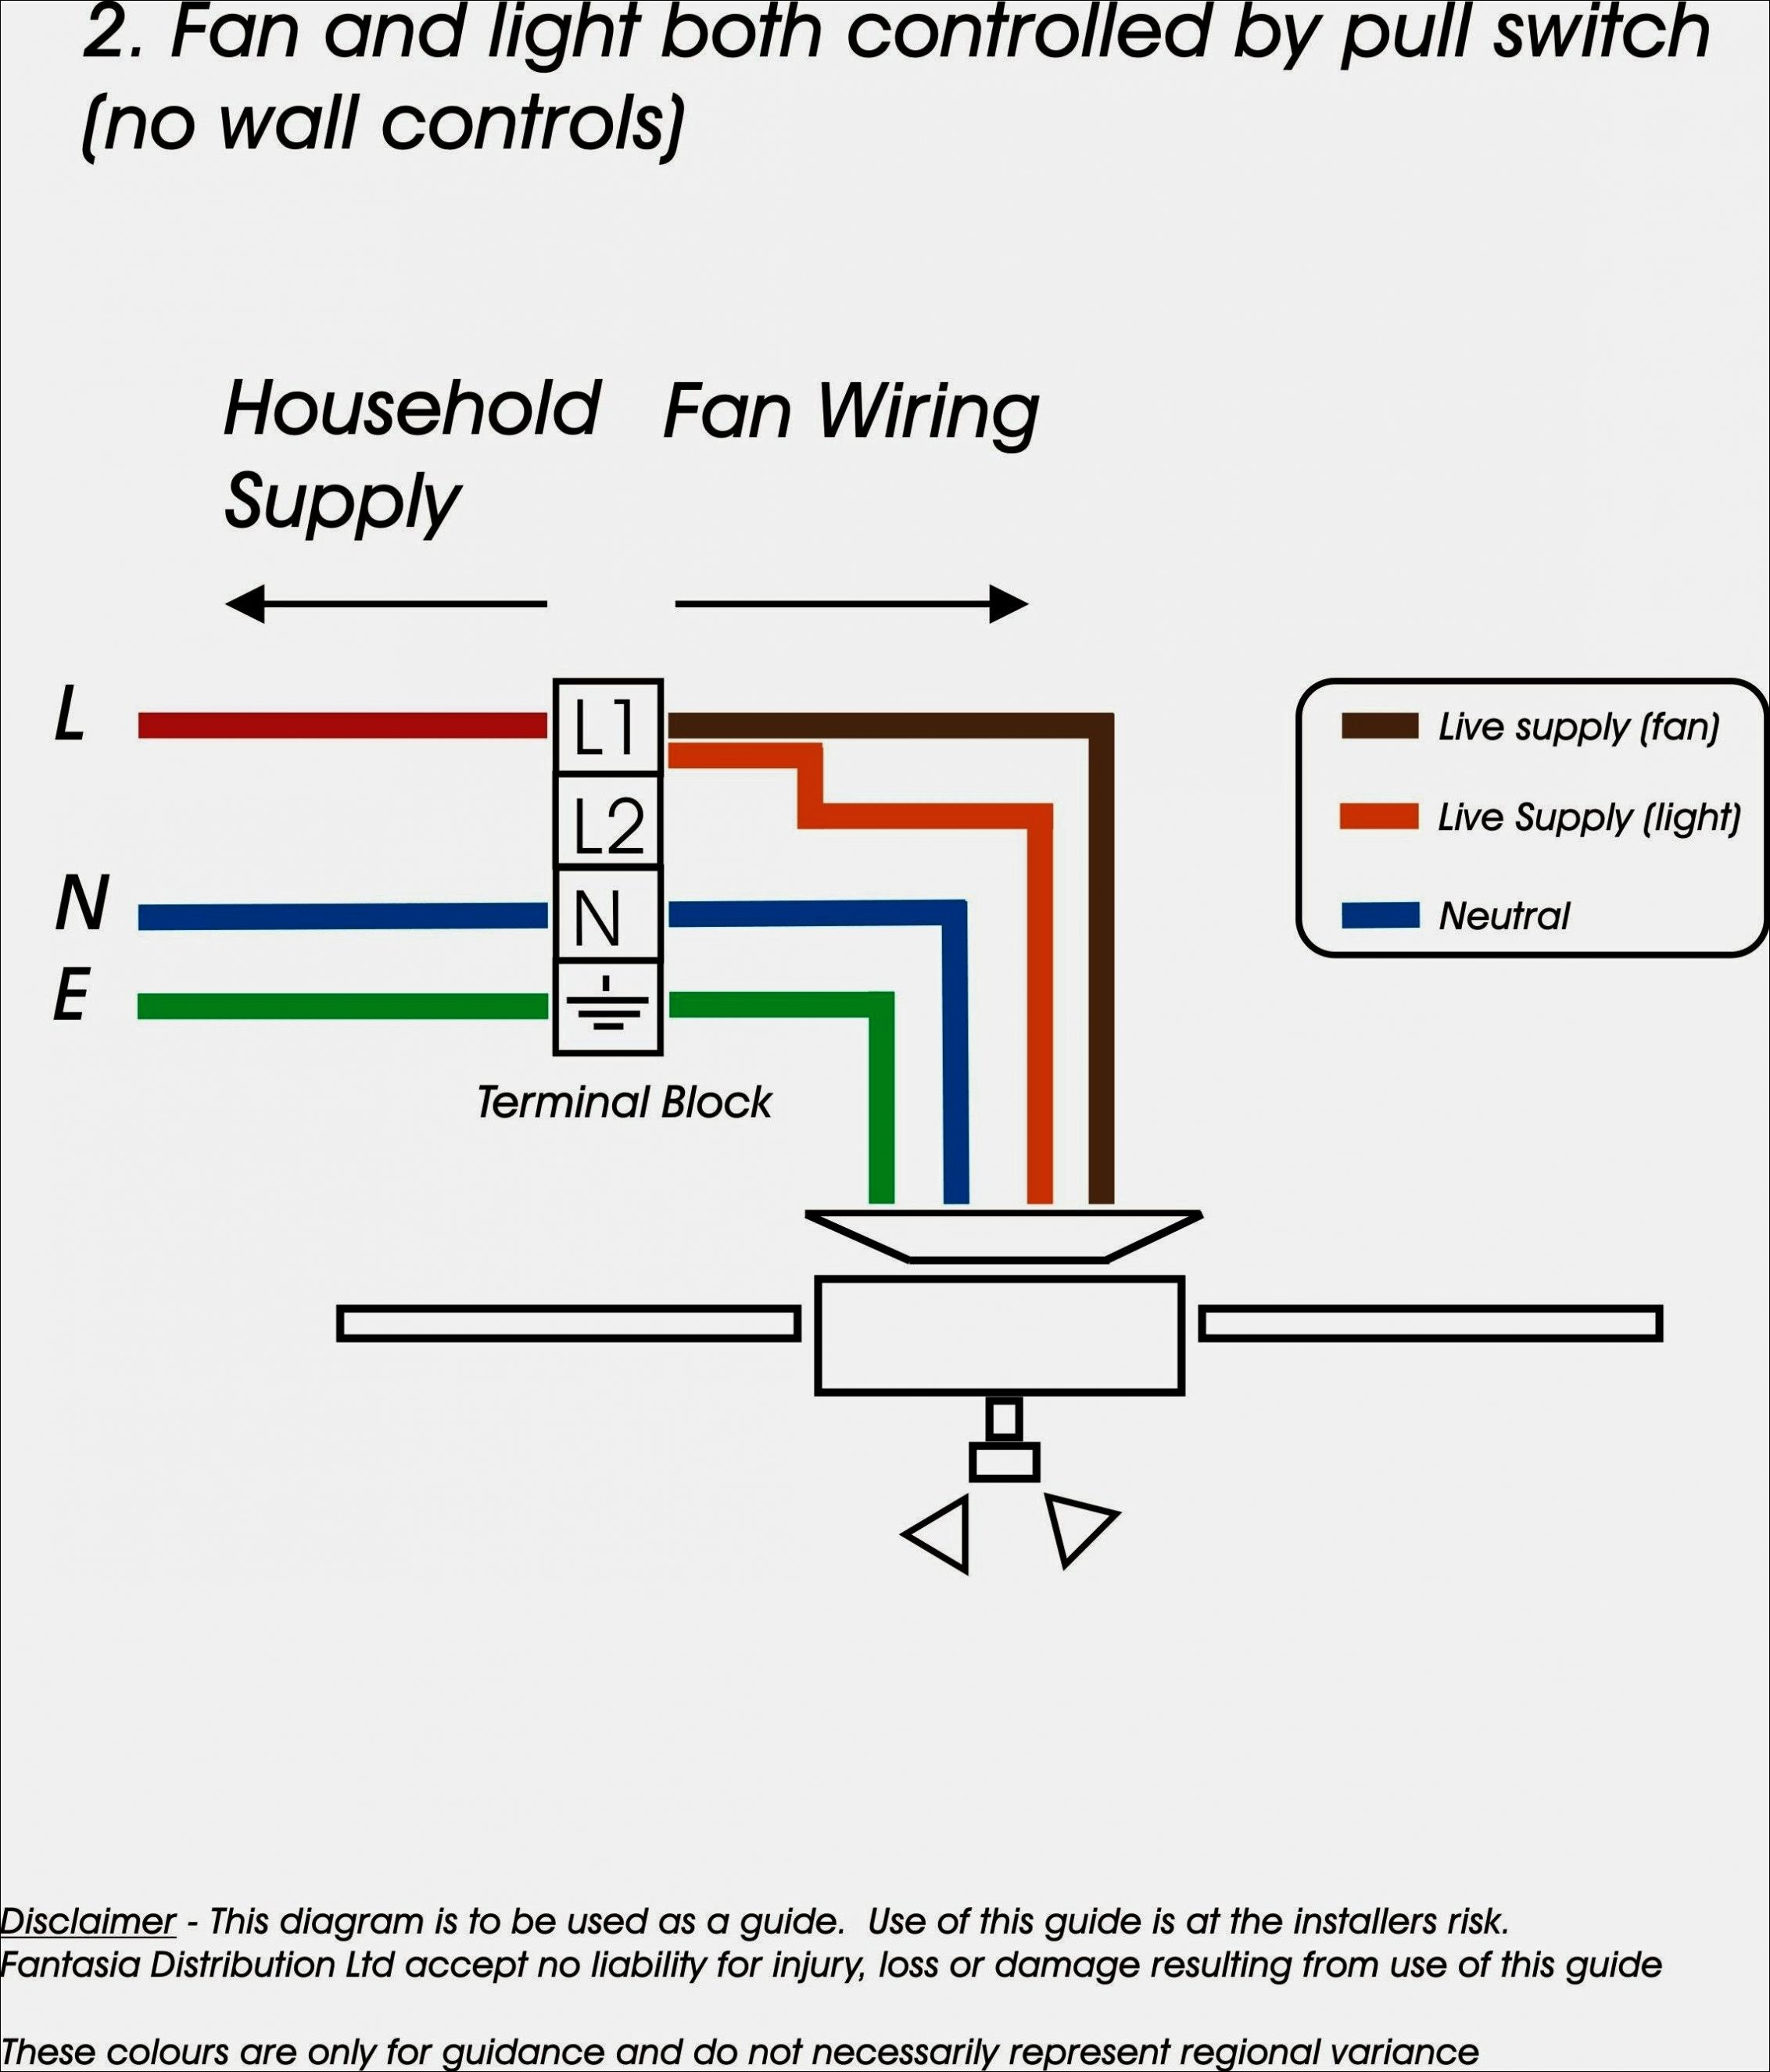 Ceiling Fan Pull Chain Light Switch Wiring Diagram - Albertasafety - Ceiling Fan Pull Chain Light Switch Wiring Diagram